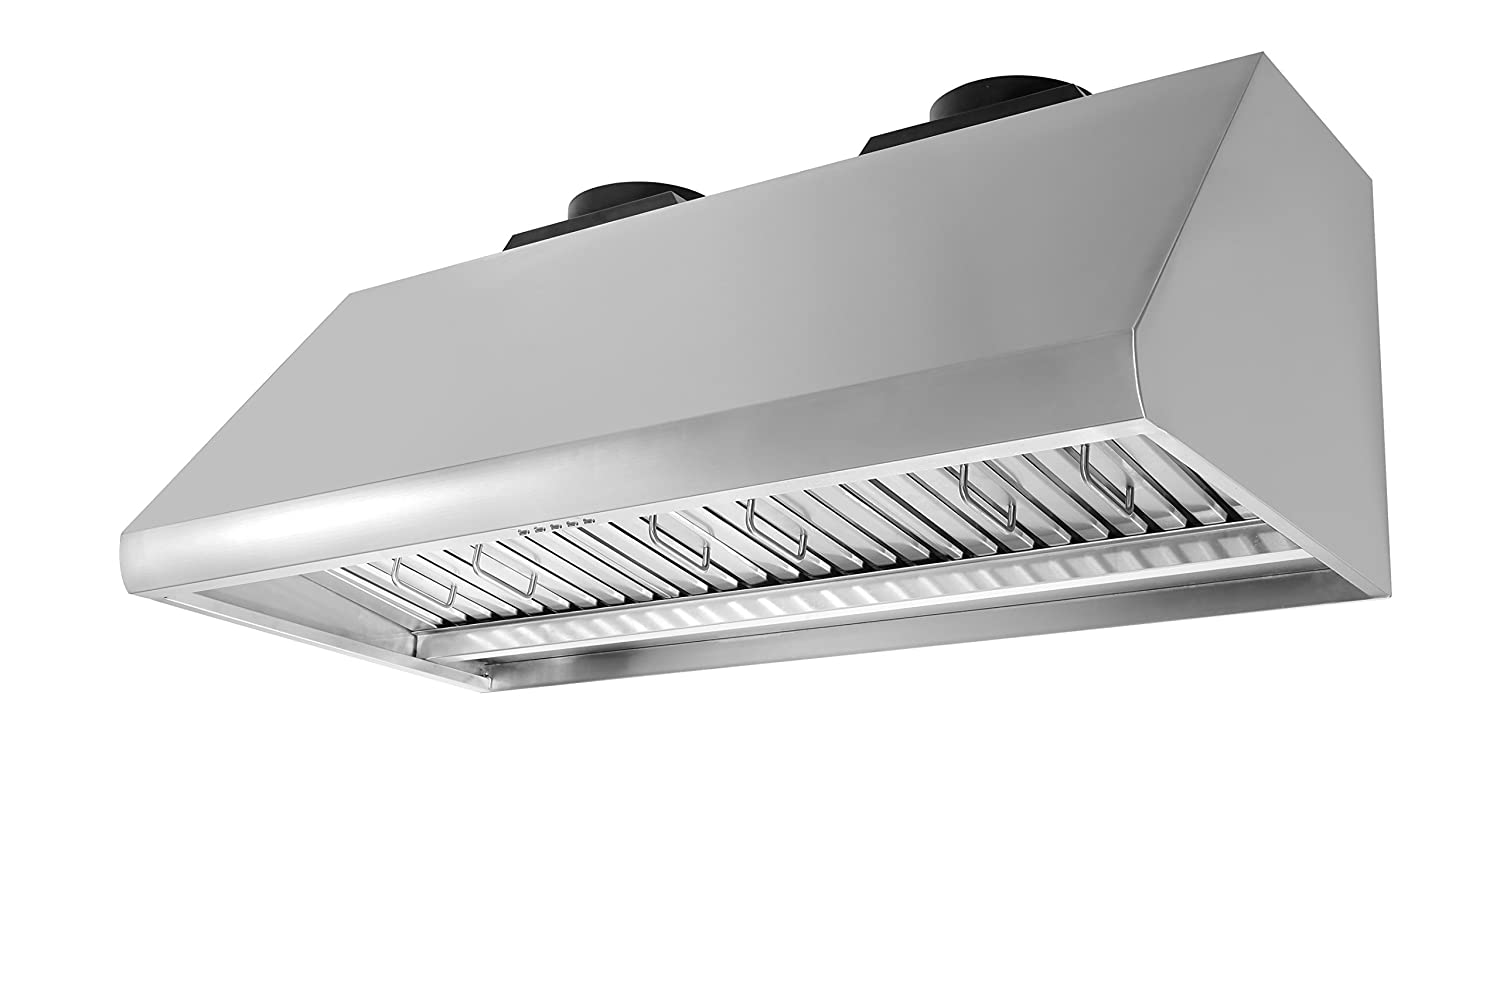 "Thorkitchen HRH4805U 48"" Under Cabinet Range Hood with 1200 CFM Push Control, Stainless Steel"